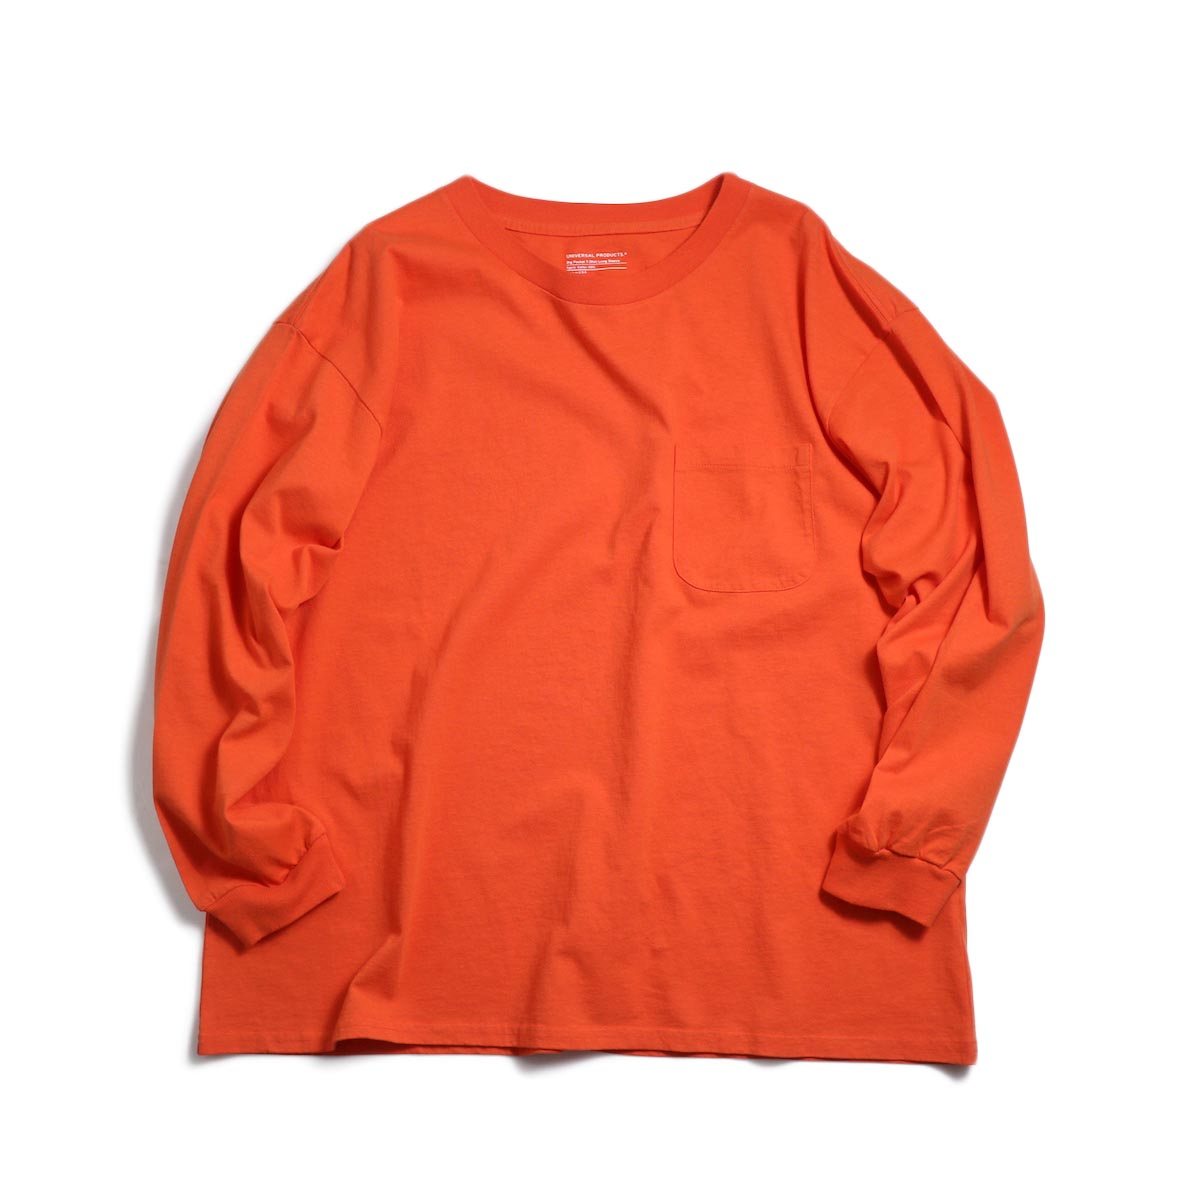 UNIVERSAL PRODUCTS / Heavy Weight L/S T-Shirt -Orange 正面